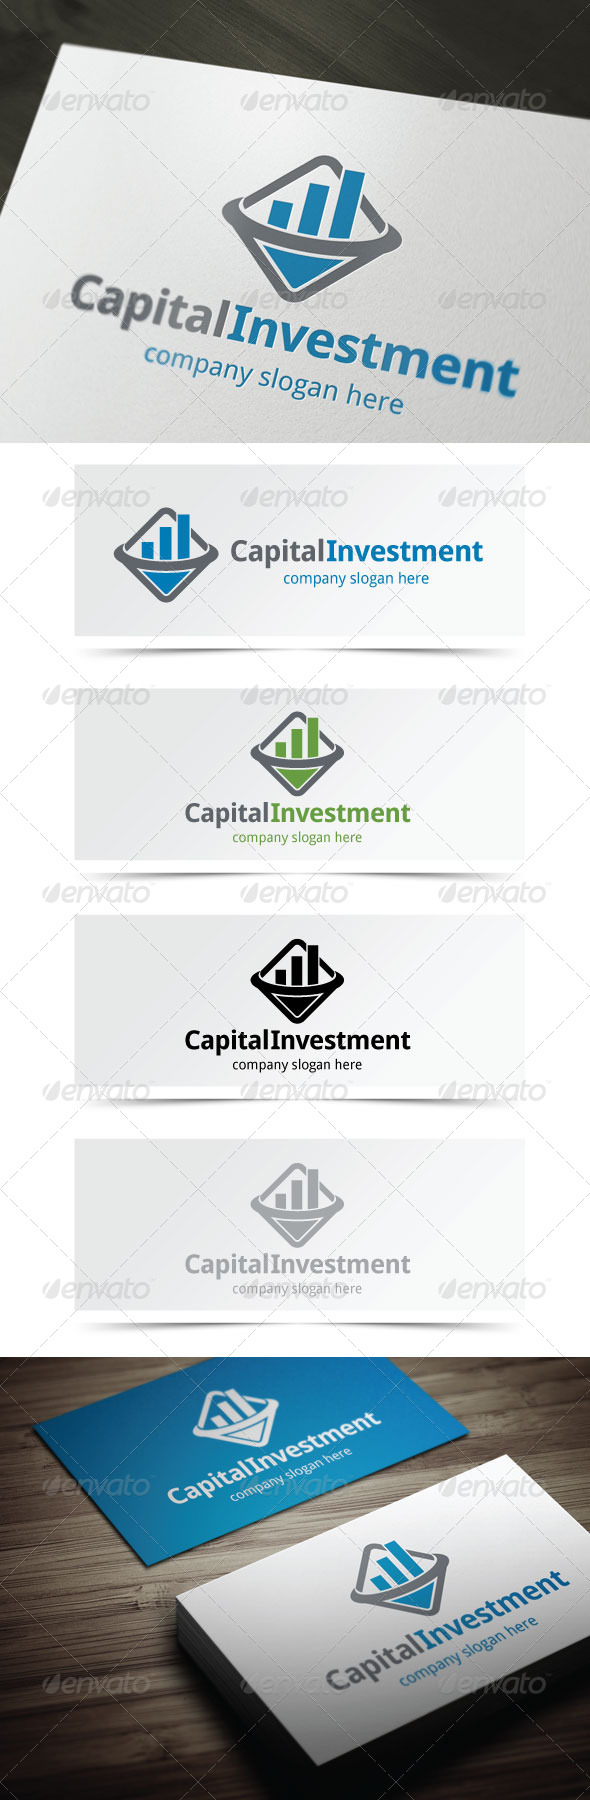 GraphicRiver Capital Investment 5351476